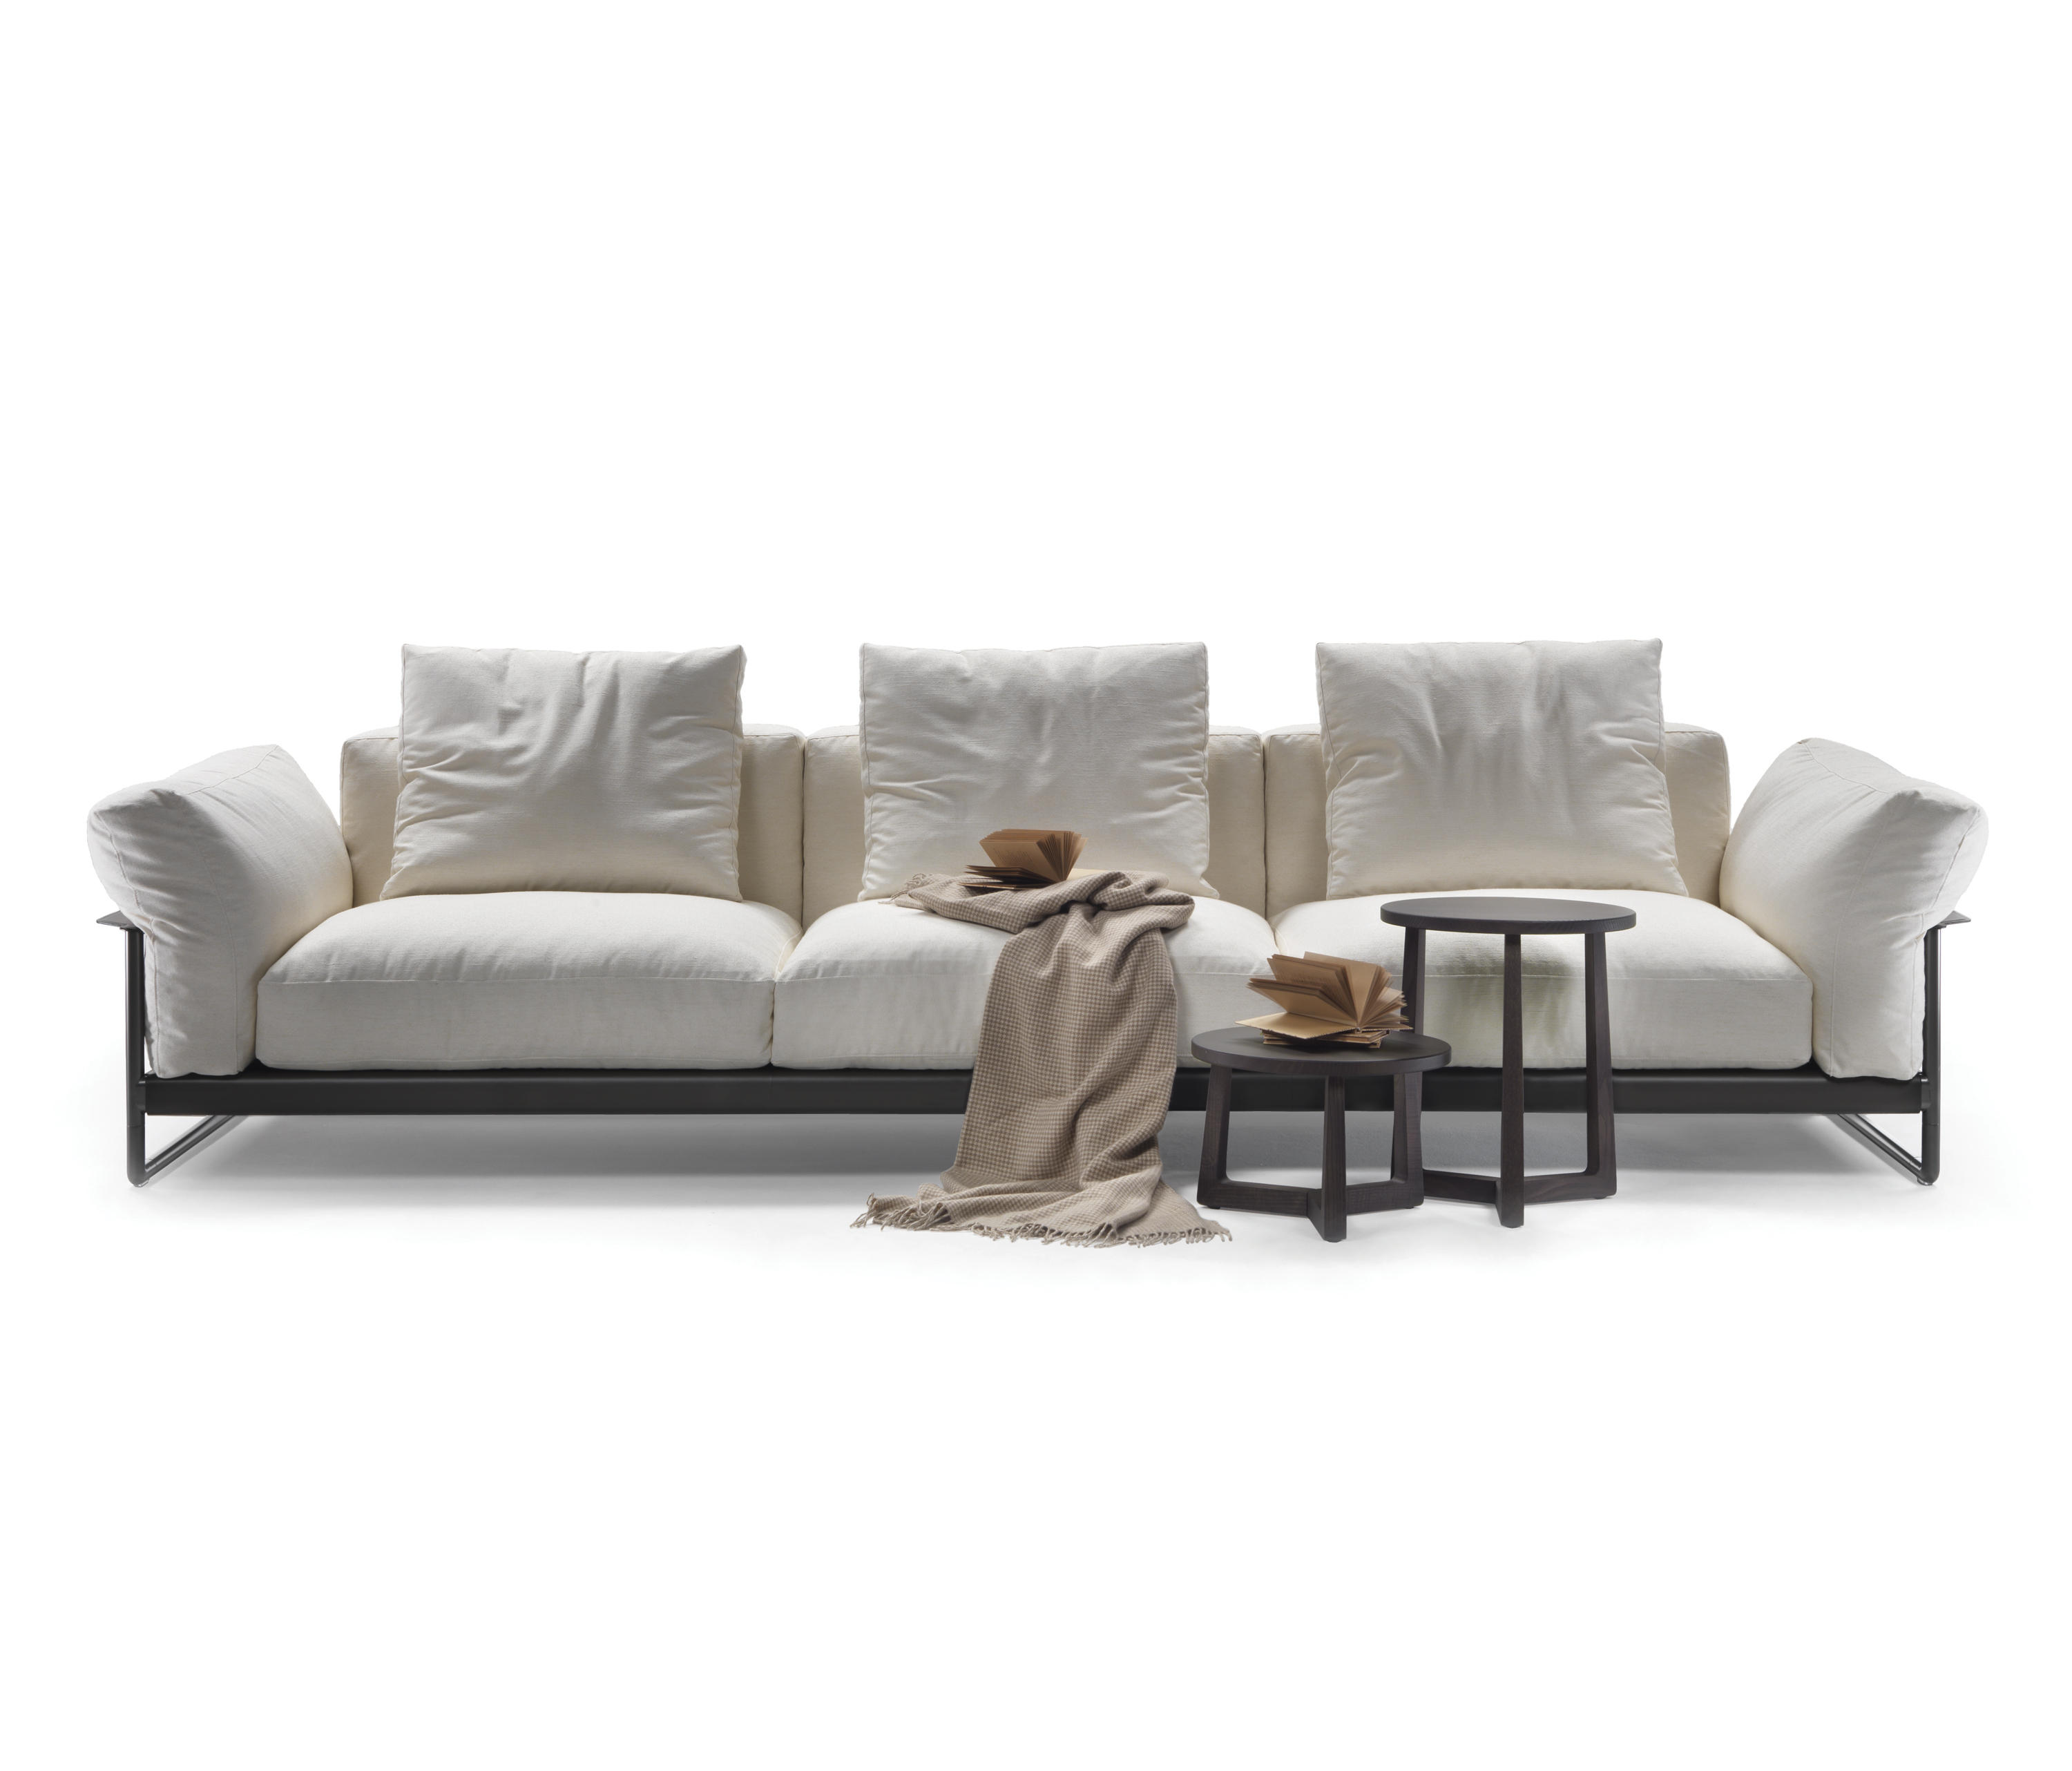 Attrayant ... Zeno Light By Flexform | Sofas ...